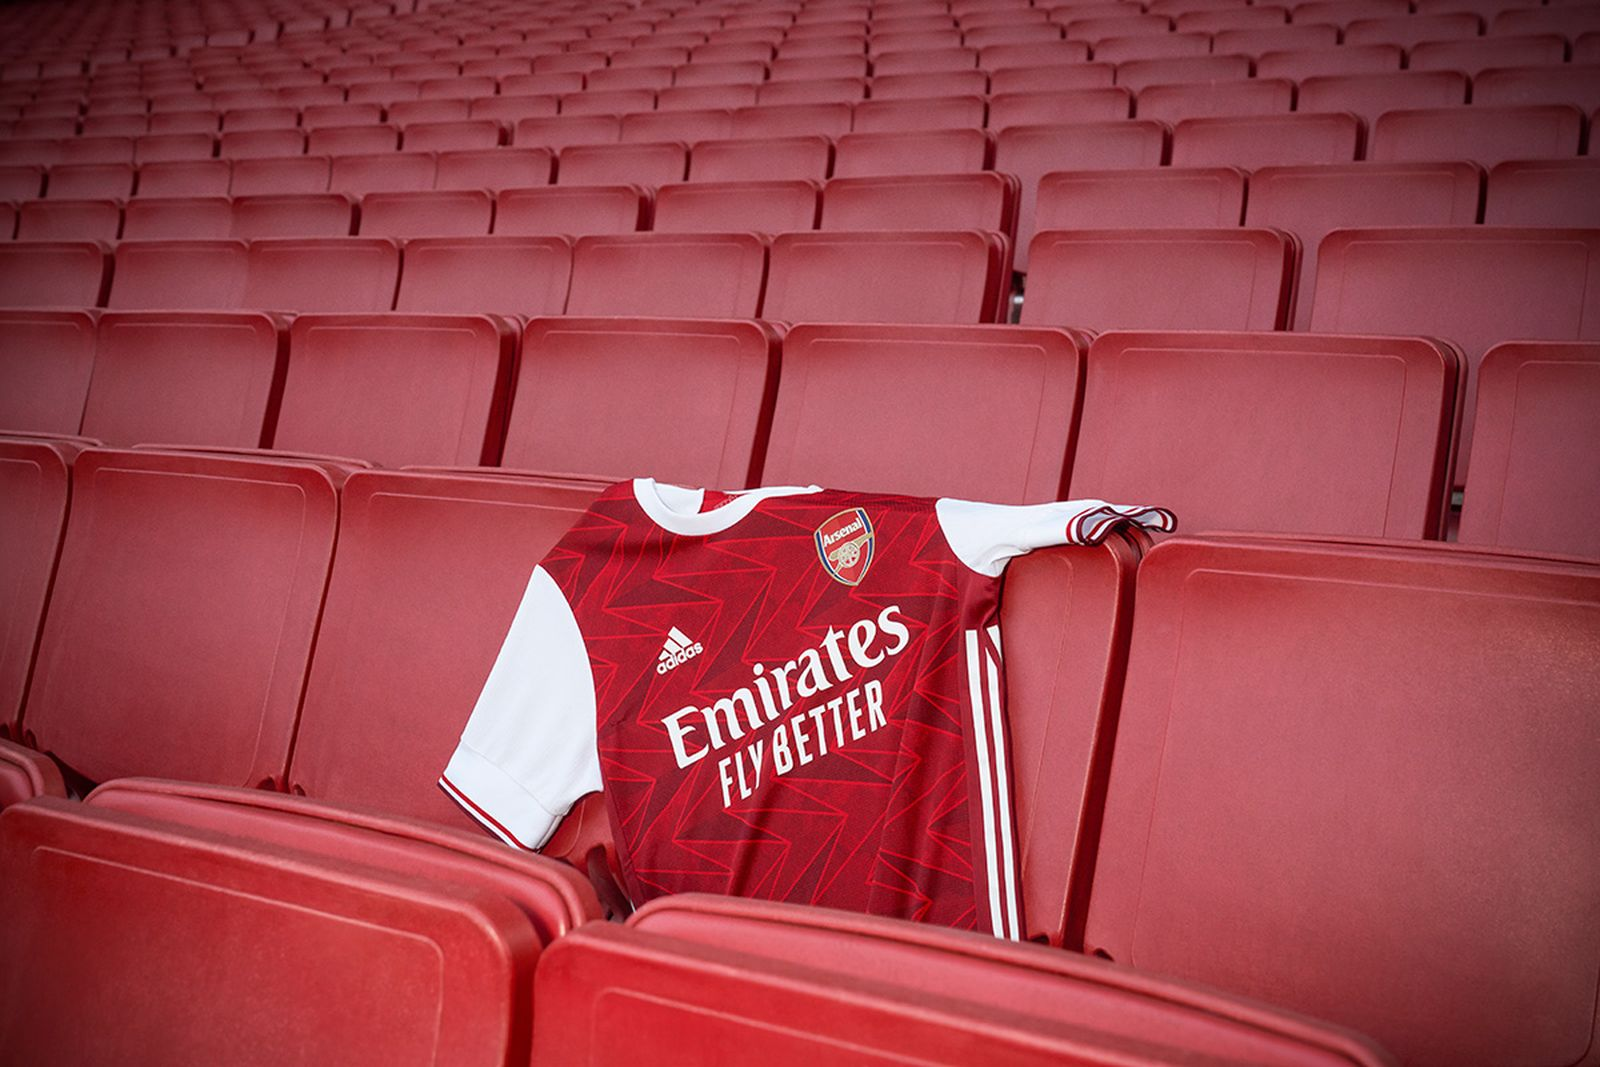 adidas arsenal home jersey for the 2020/21 season